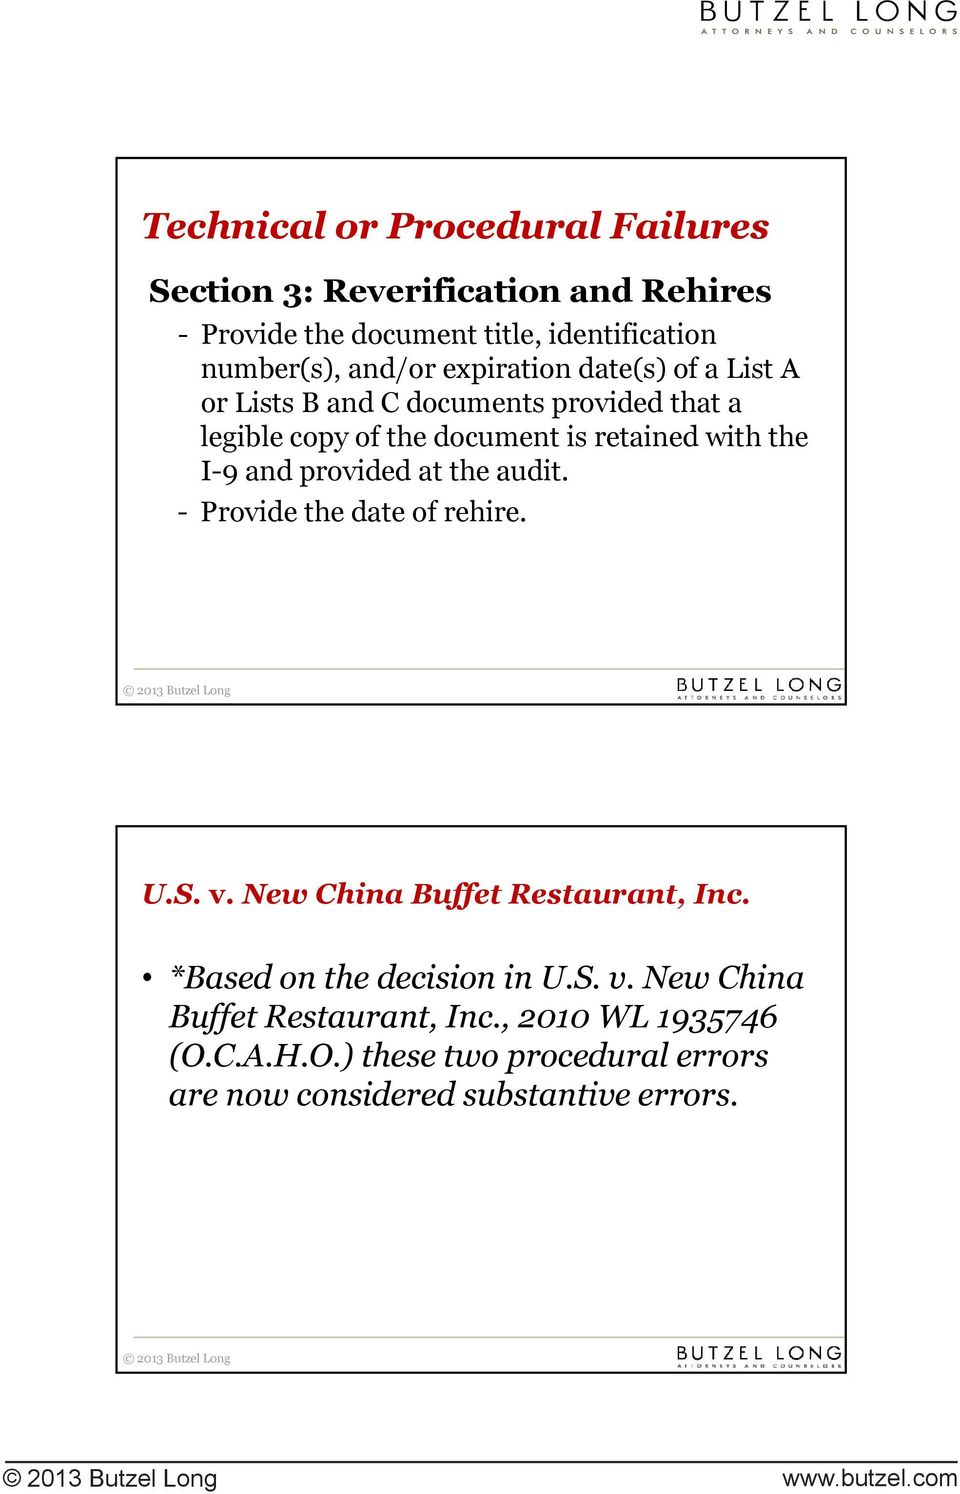 provided at the audit. - Provide the date of rehire. U.S. v. New China Buffet Restaurant, Inc. *Based on the decision in U.S. v. New China Buffet trestaurant, t Inc.